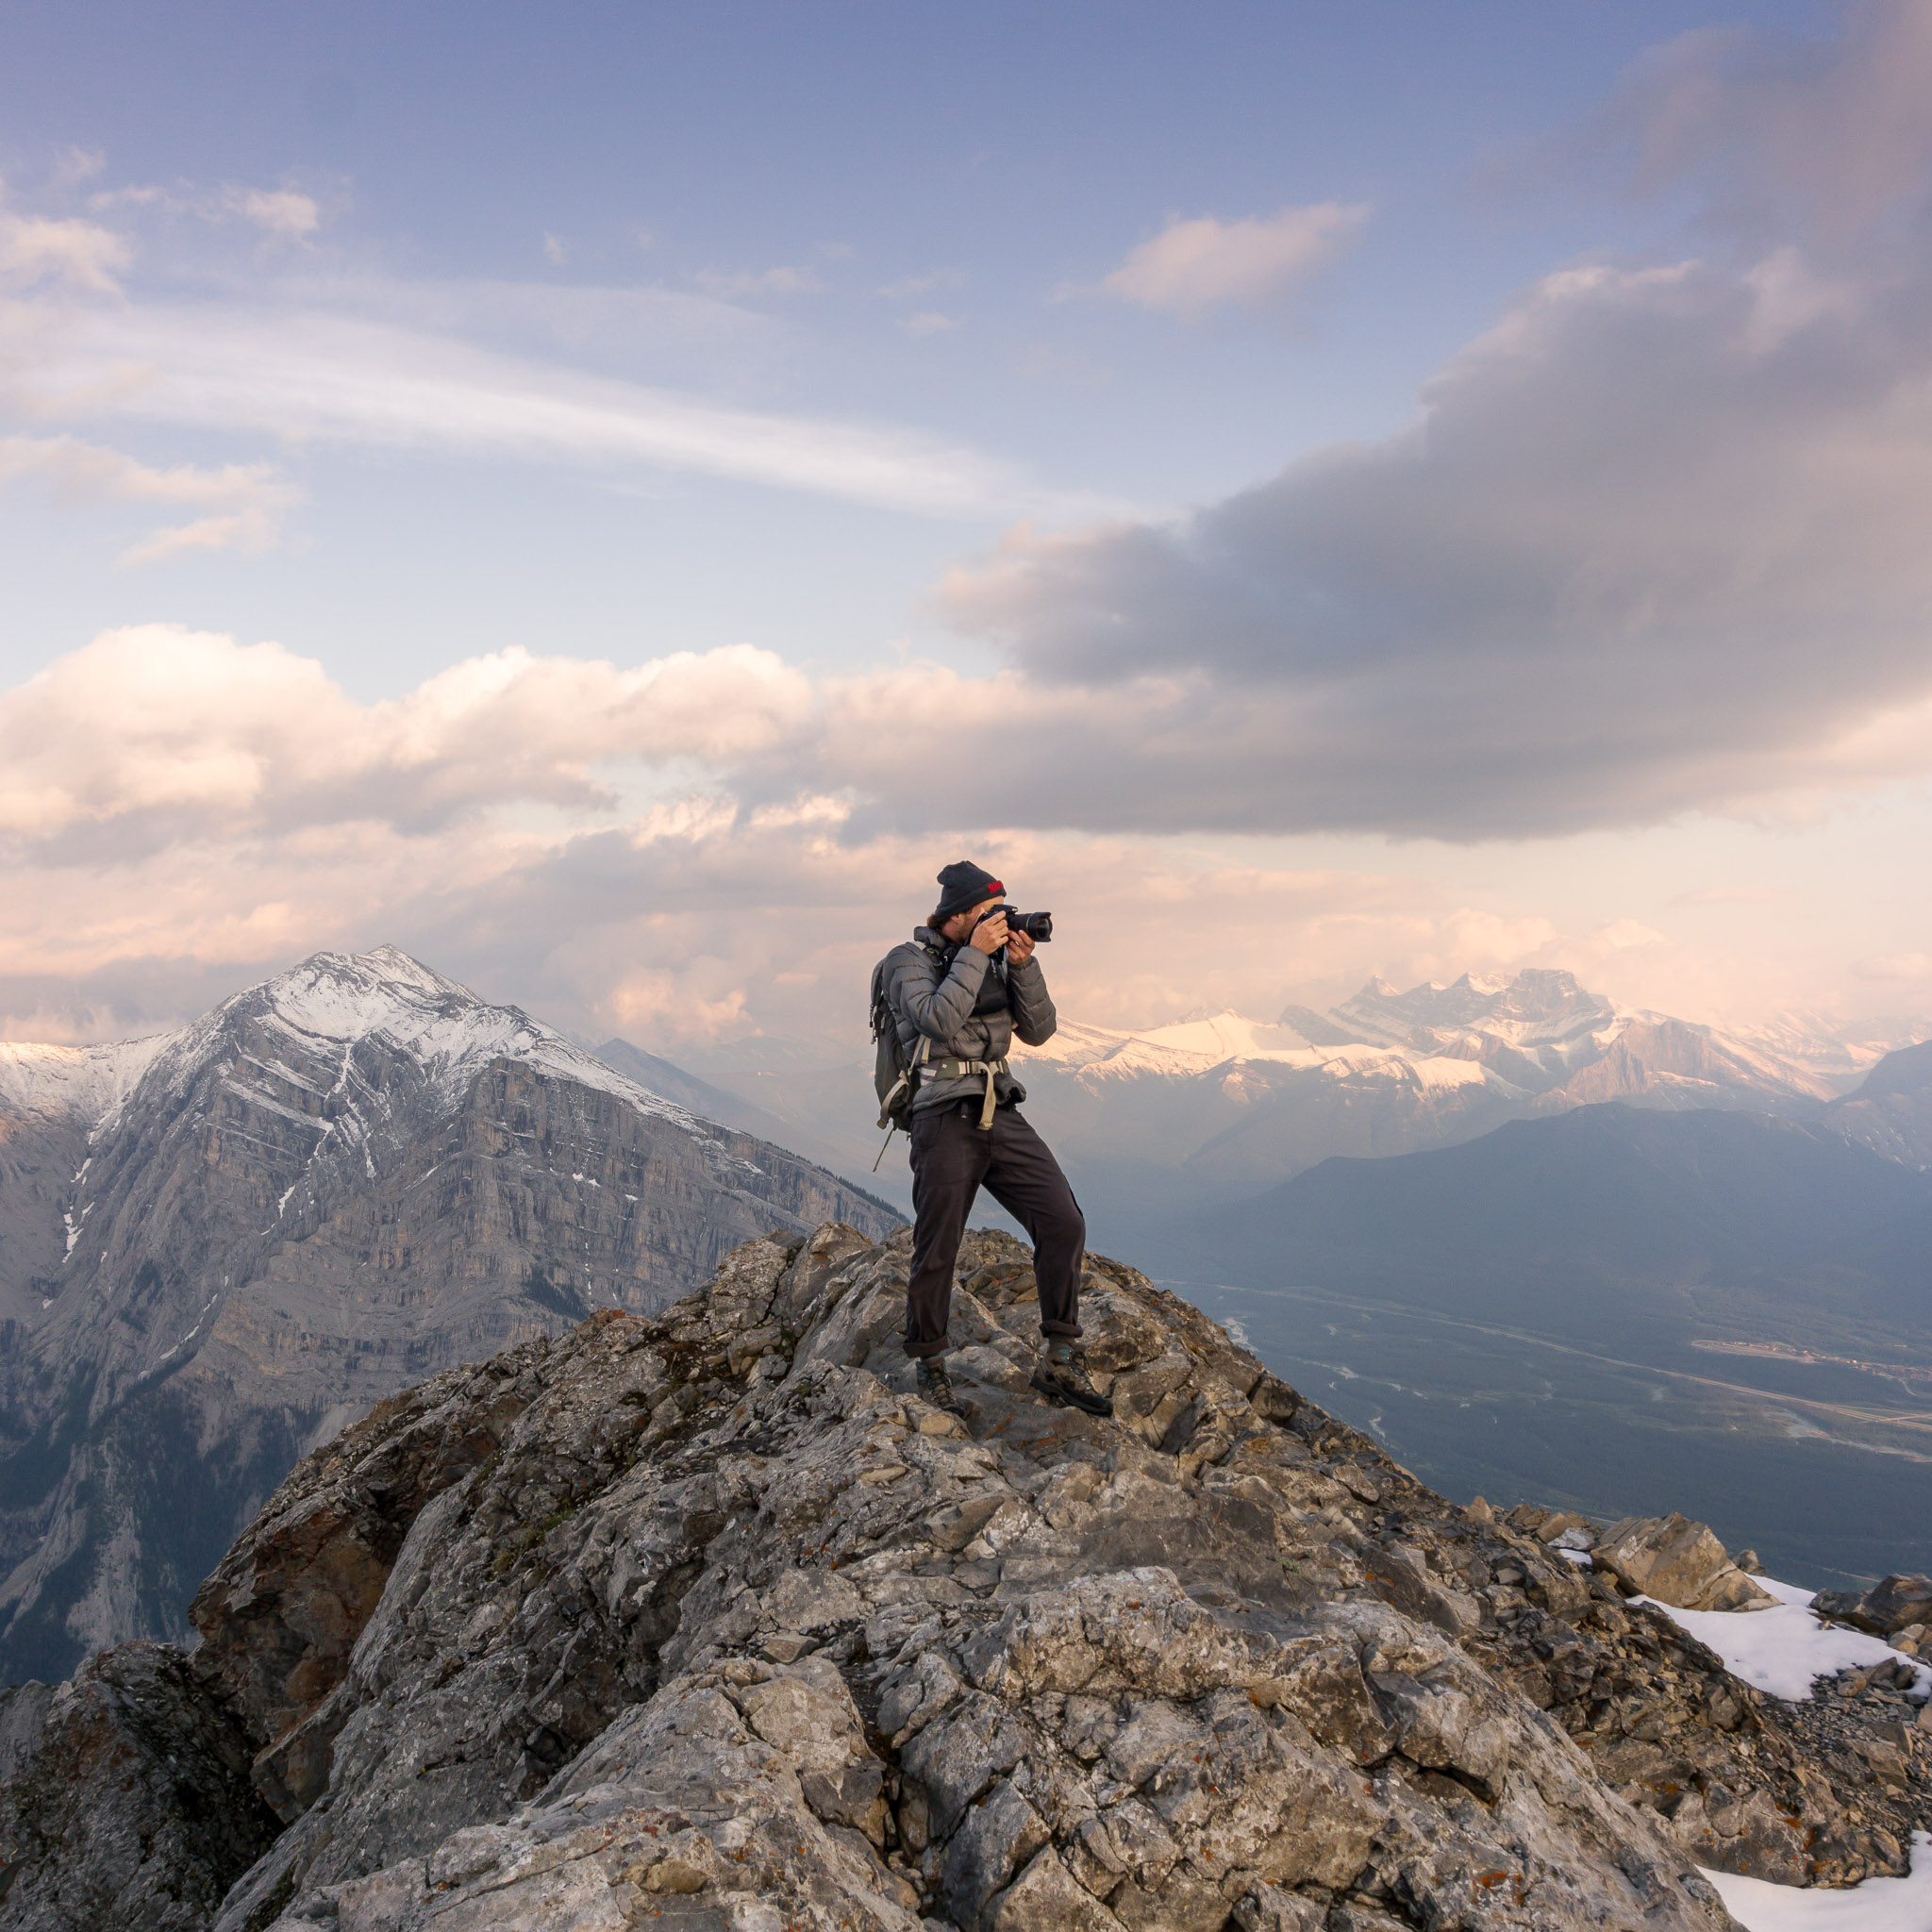 Behinds the Scenes: An evening scramble to watch the sunset at 2600m. Alberta, Canada.